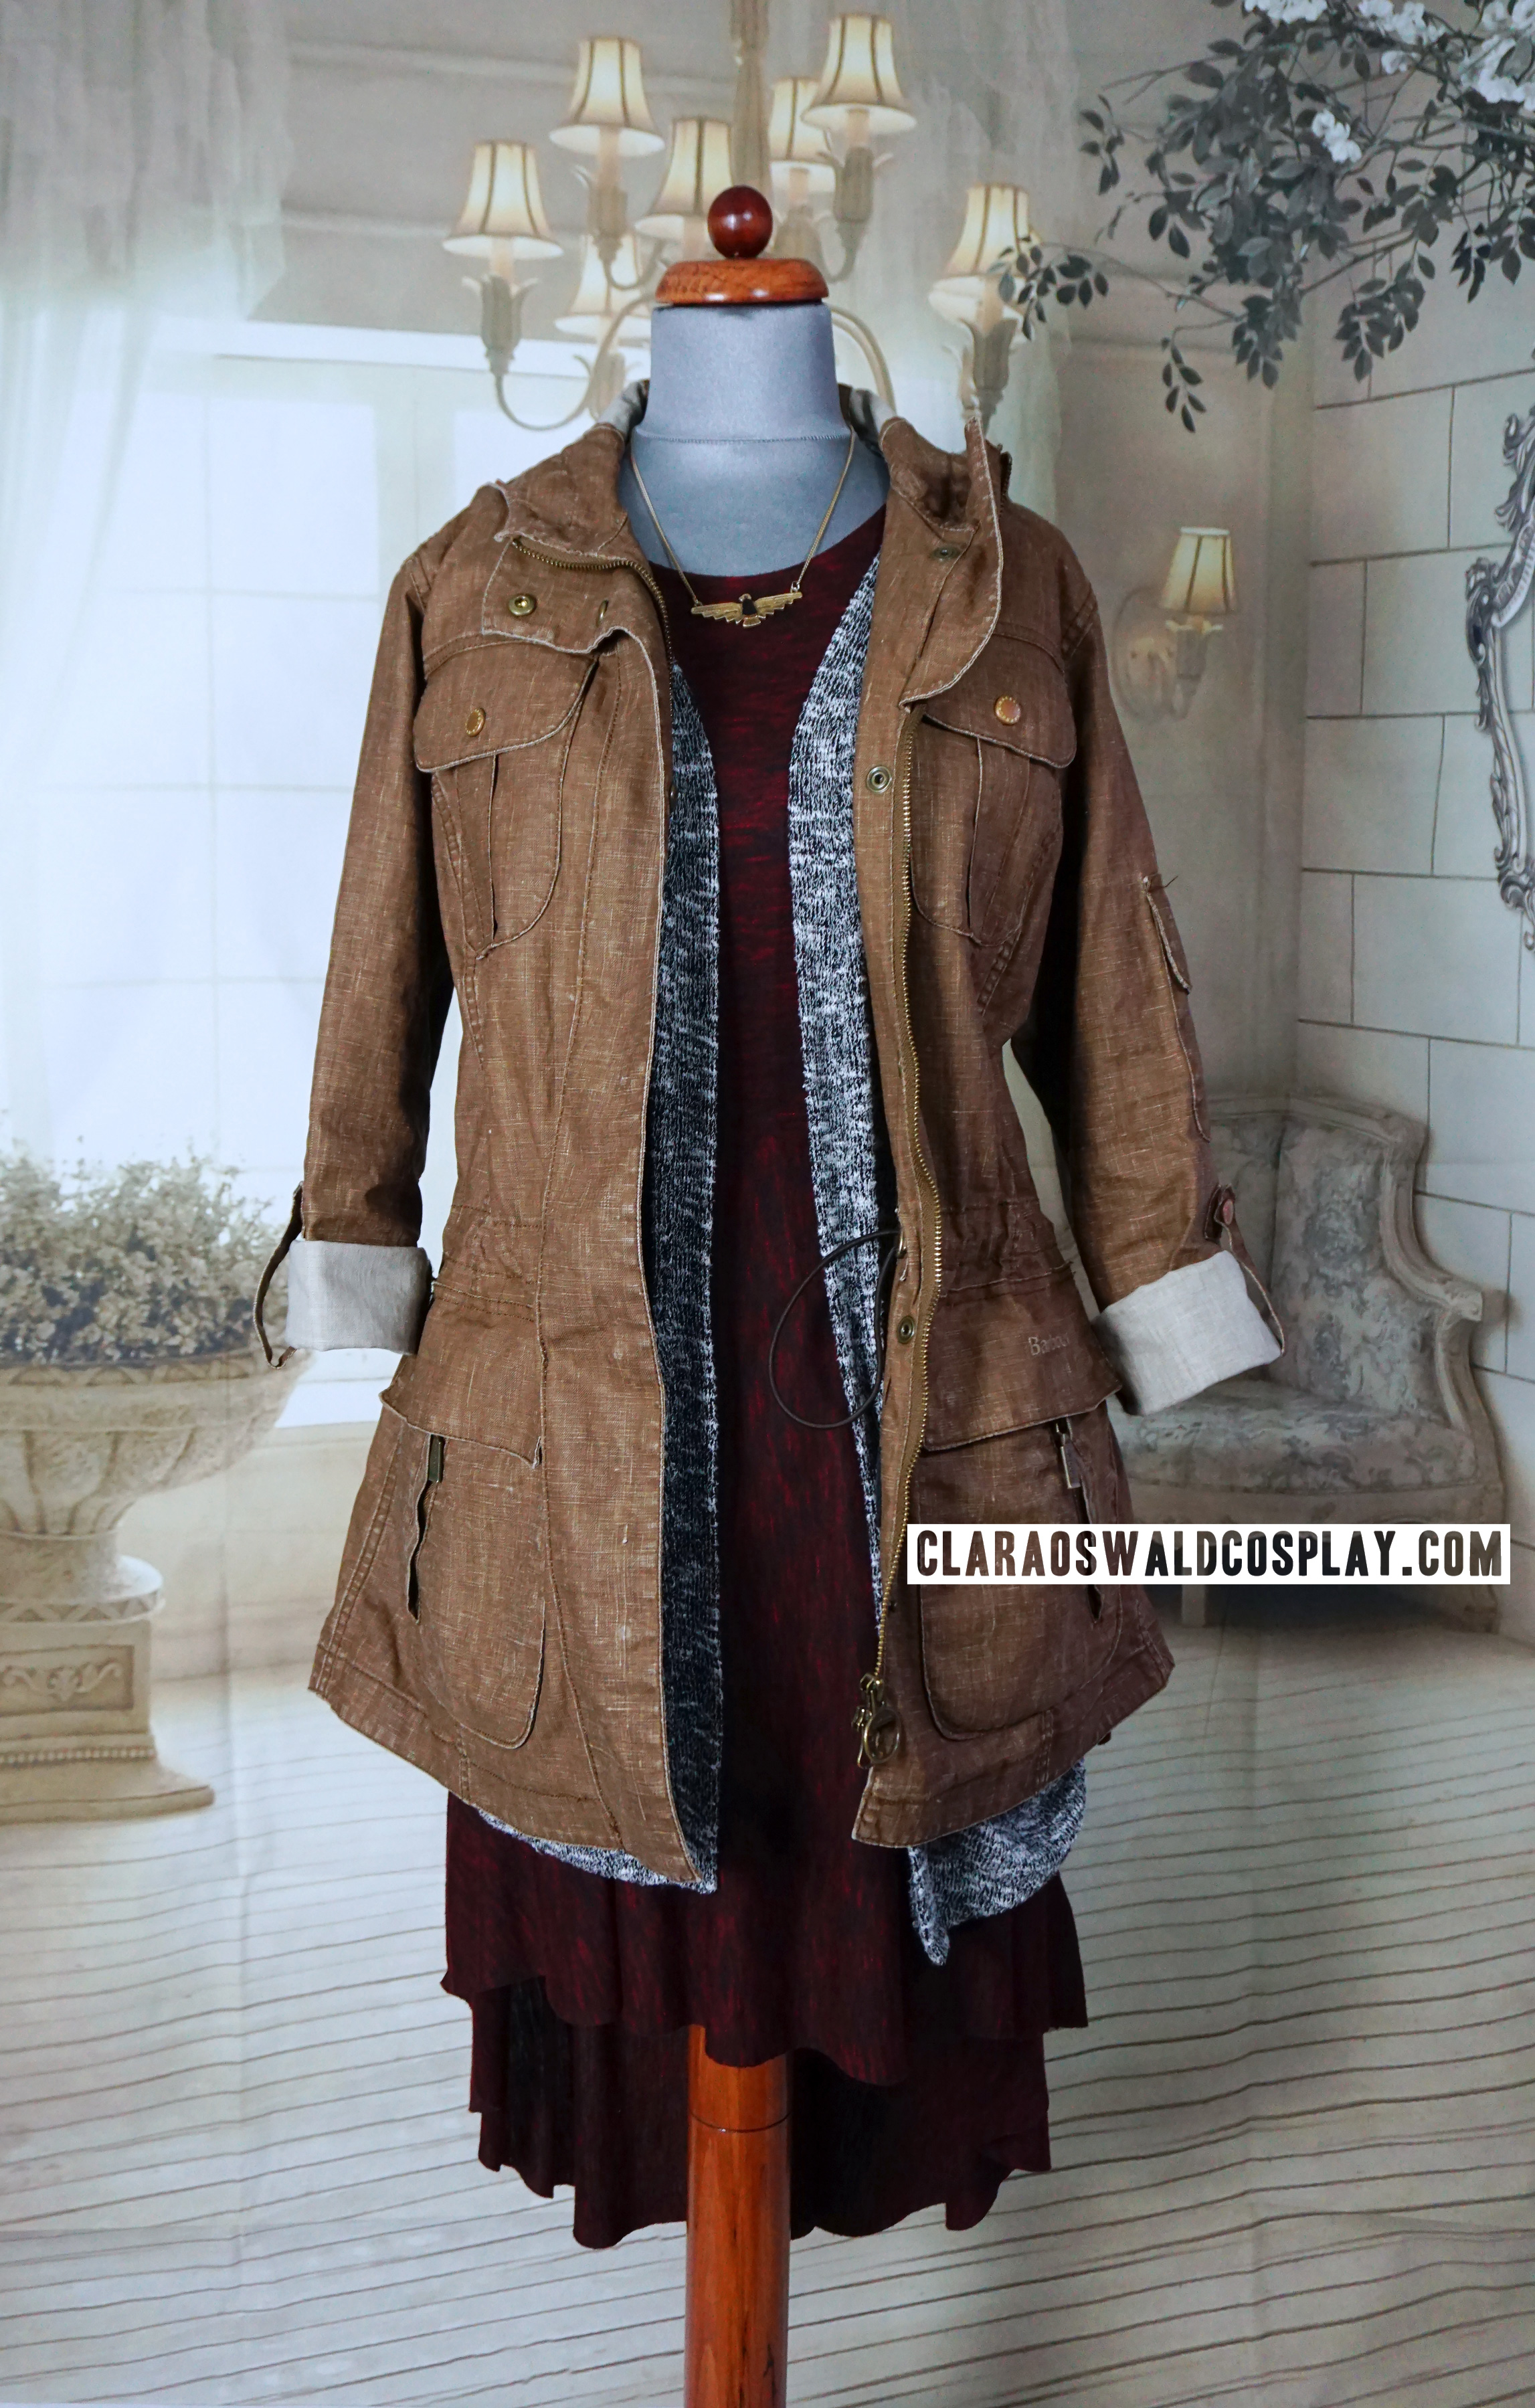 Clara Oswald's Bells of Saint John outfit featuring the Urban Outfitters Silence + Noise Space Dye Fishtail Dress, Urban Outfitters Sparkle & Fade Cardigan in grey, Barbour Vintage Duralinen Force Parka (Sandstone colour alt) and Urban Outfitters Aztec Eagle Necklace